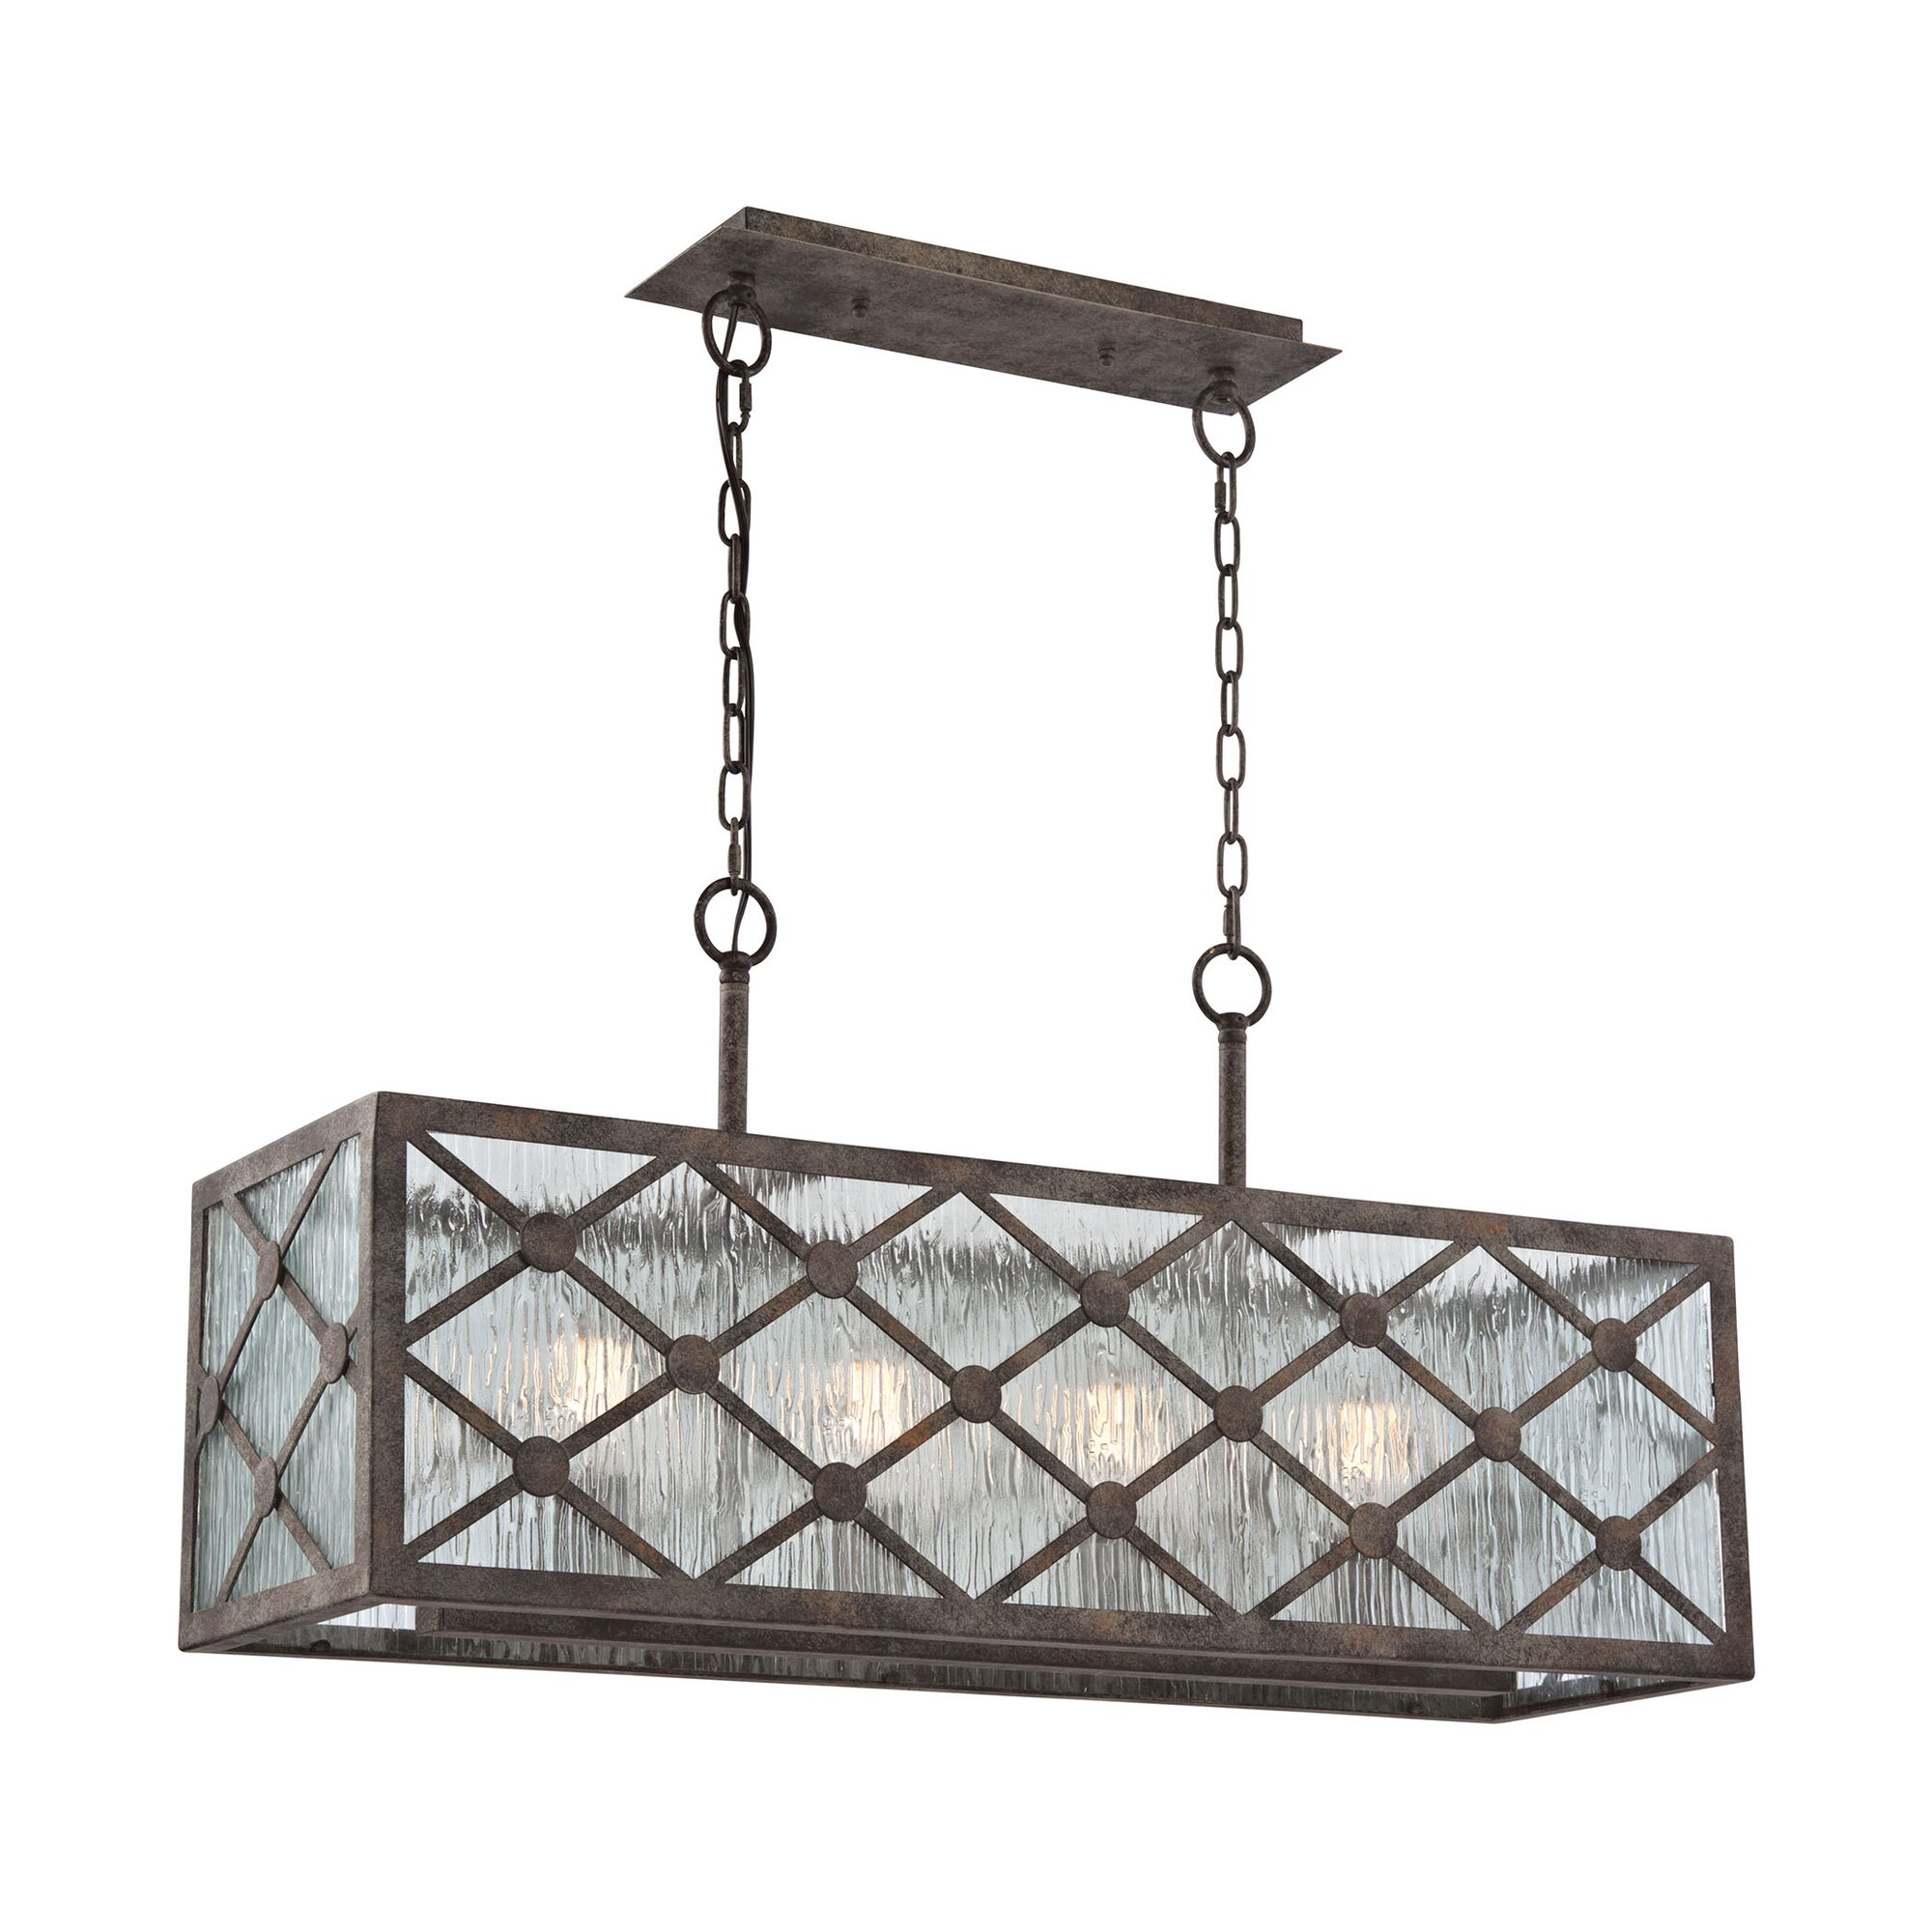 brayden studio dailey 4 light kitchen island pendant